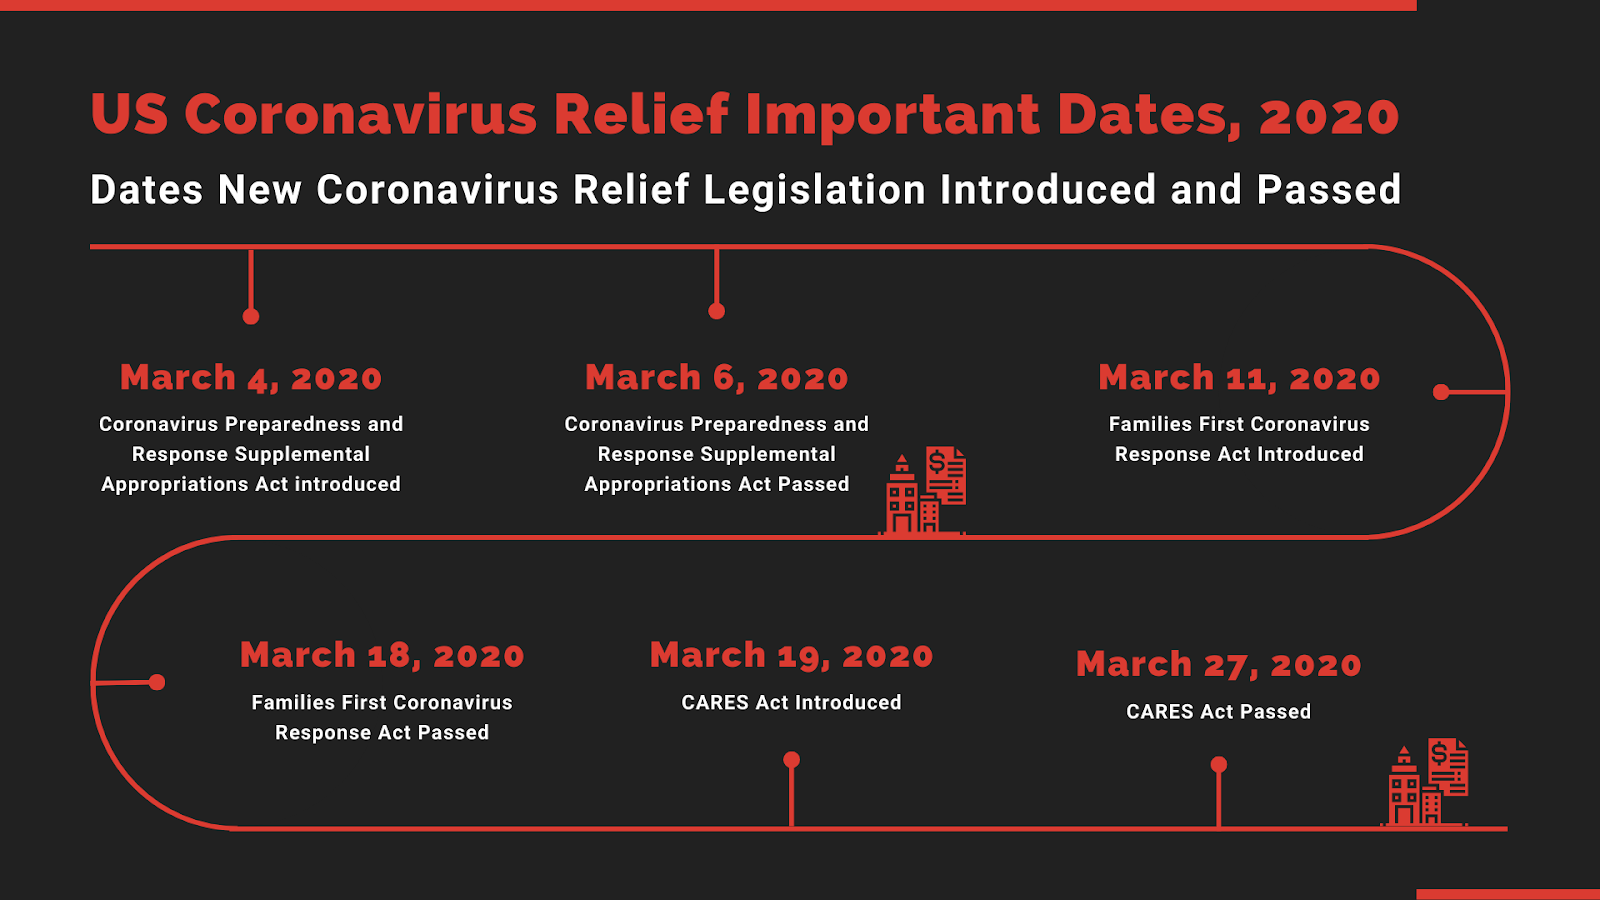 US Coronavirus Relief Important Dates